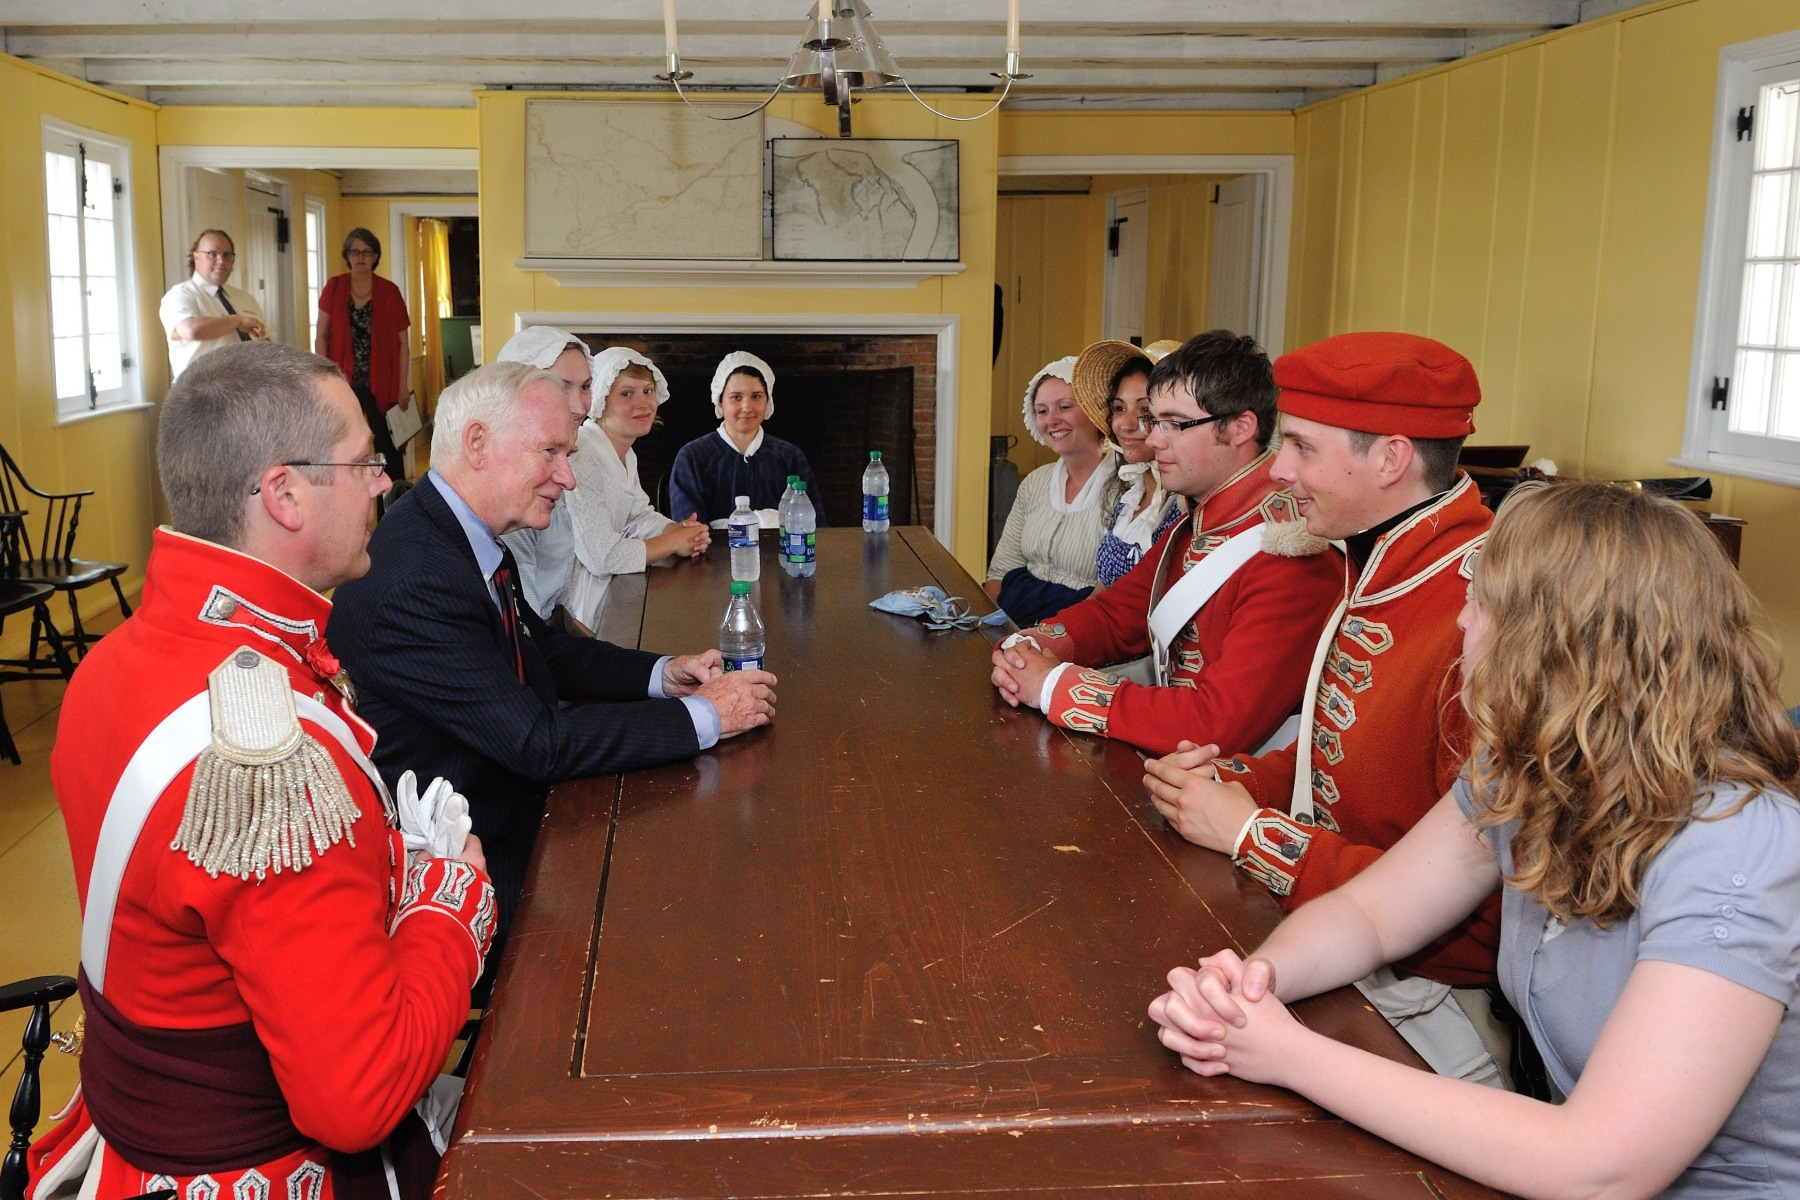 A discussion with His Excellency and Parks Canada interpretive guides on the importance of the War of 1812 today took place in the officer's quarters.